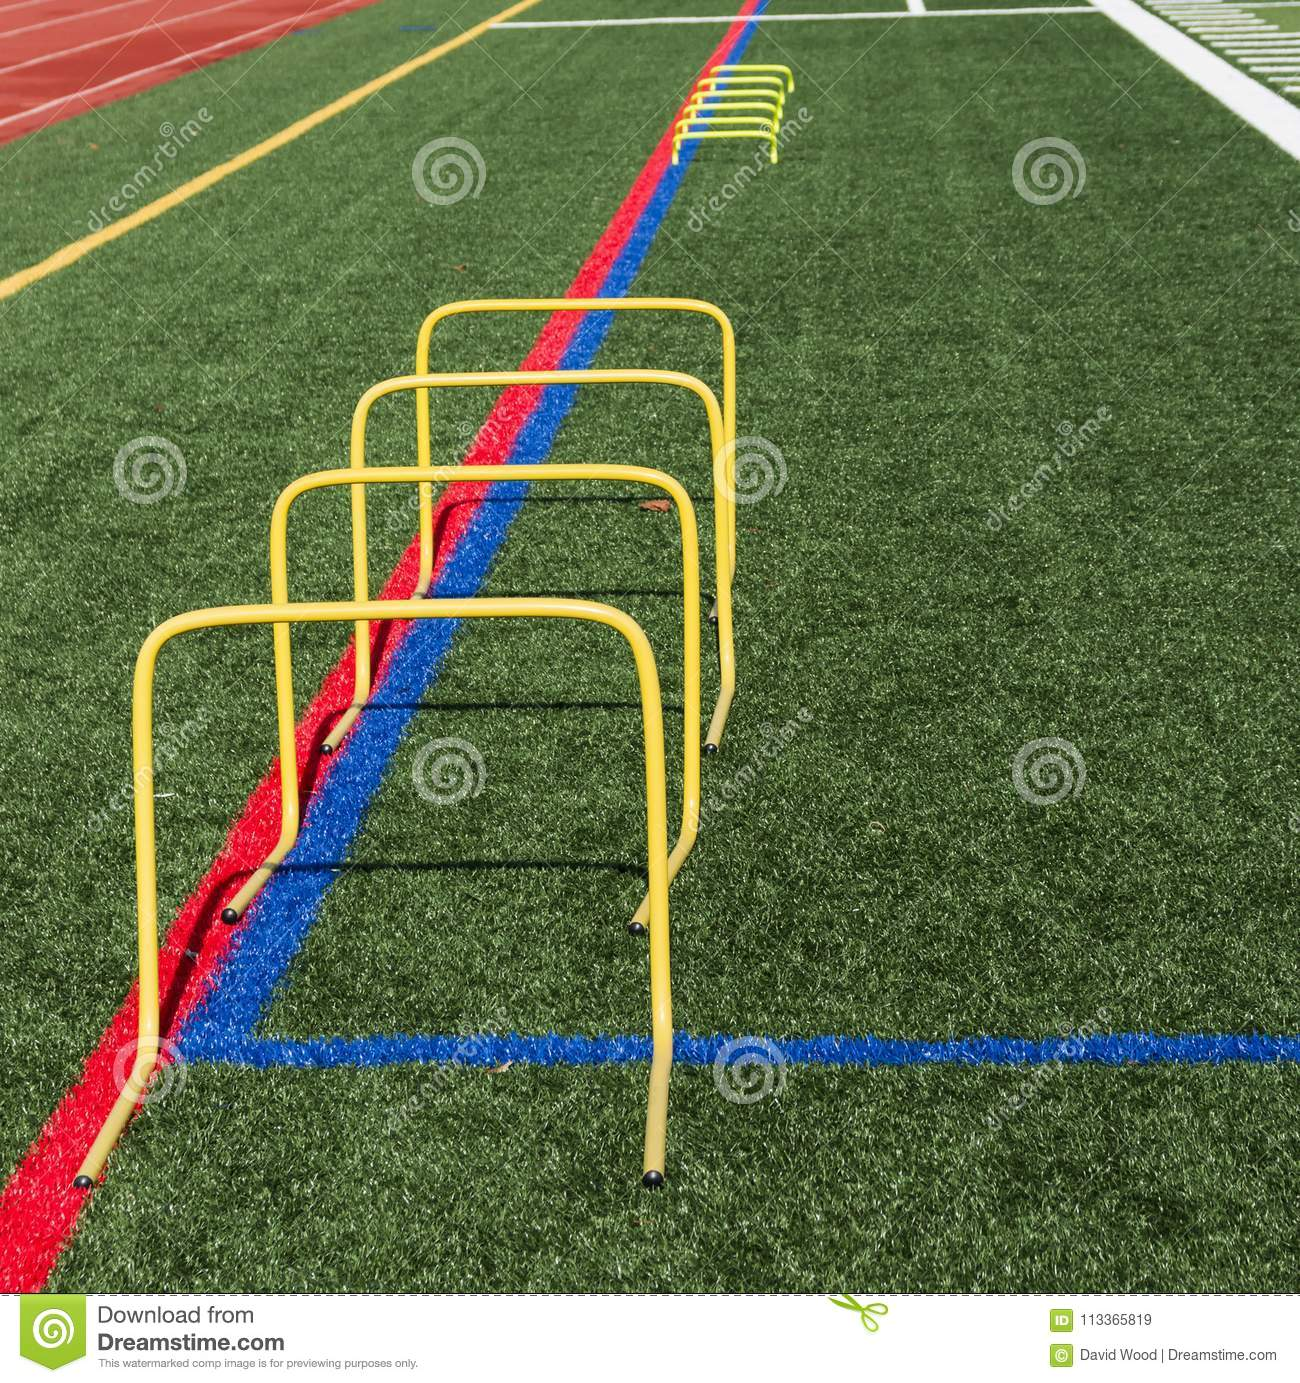 24 inch yellow banana step hurdles on turf field